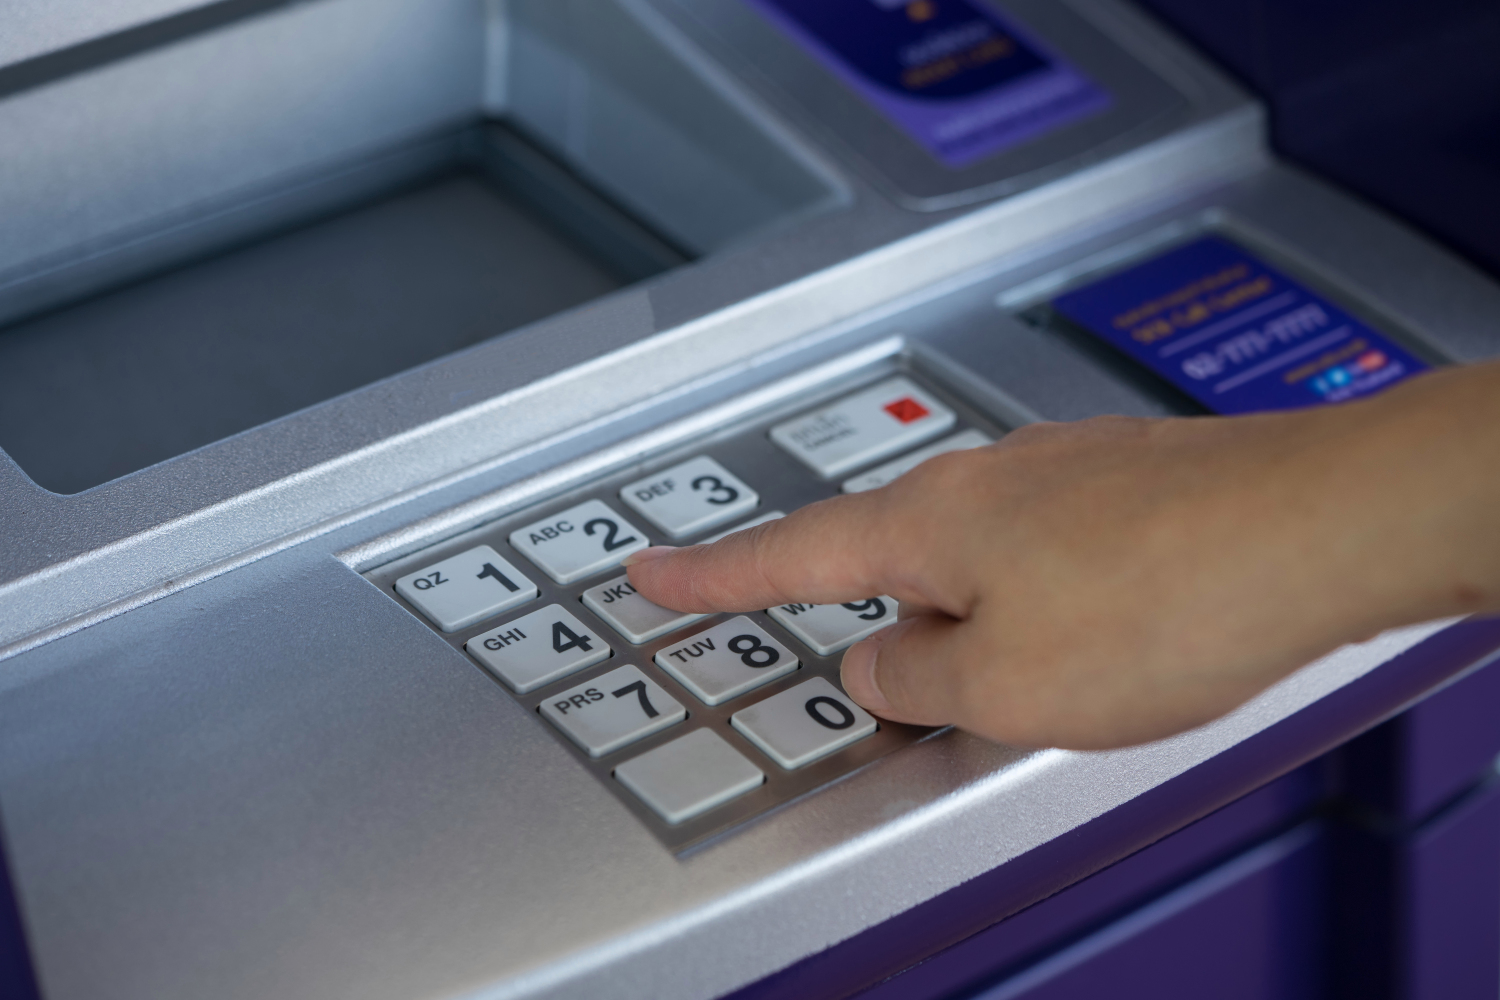 Man Kidnapped And Forced To Withdraw Money From ATM In Stockton – CBS Sacramento